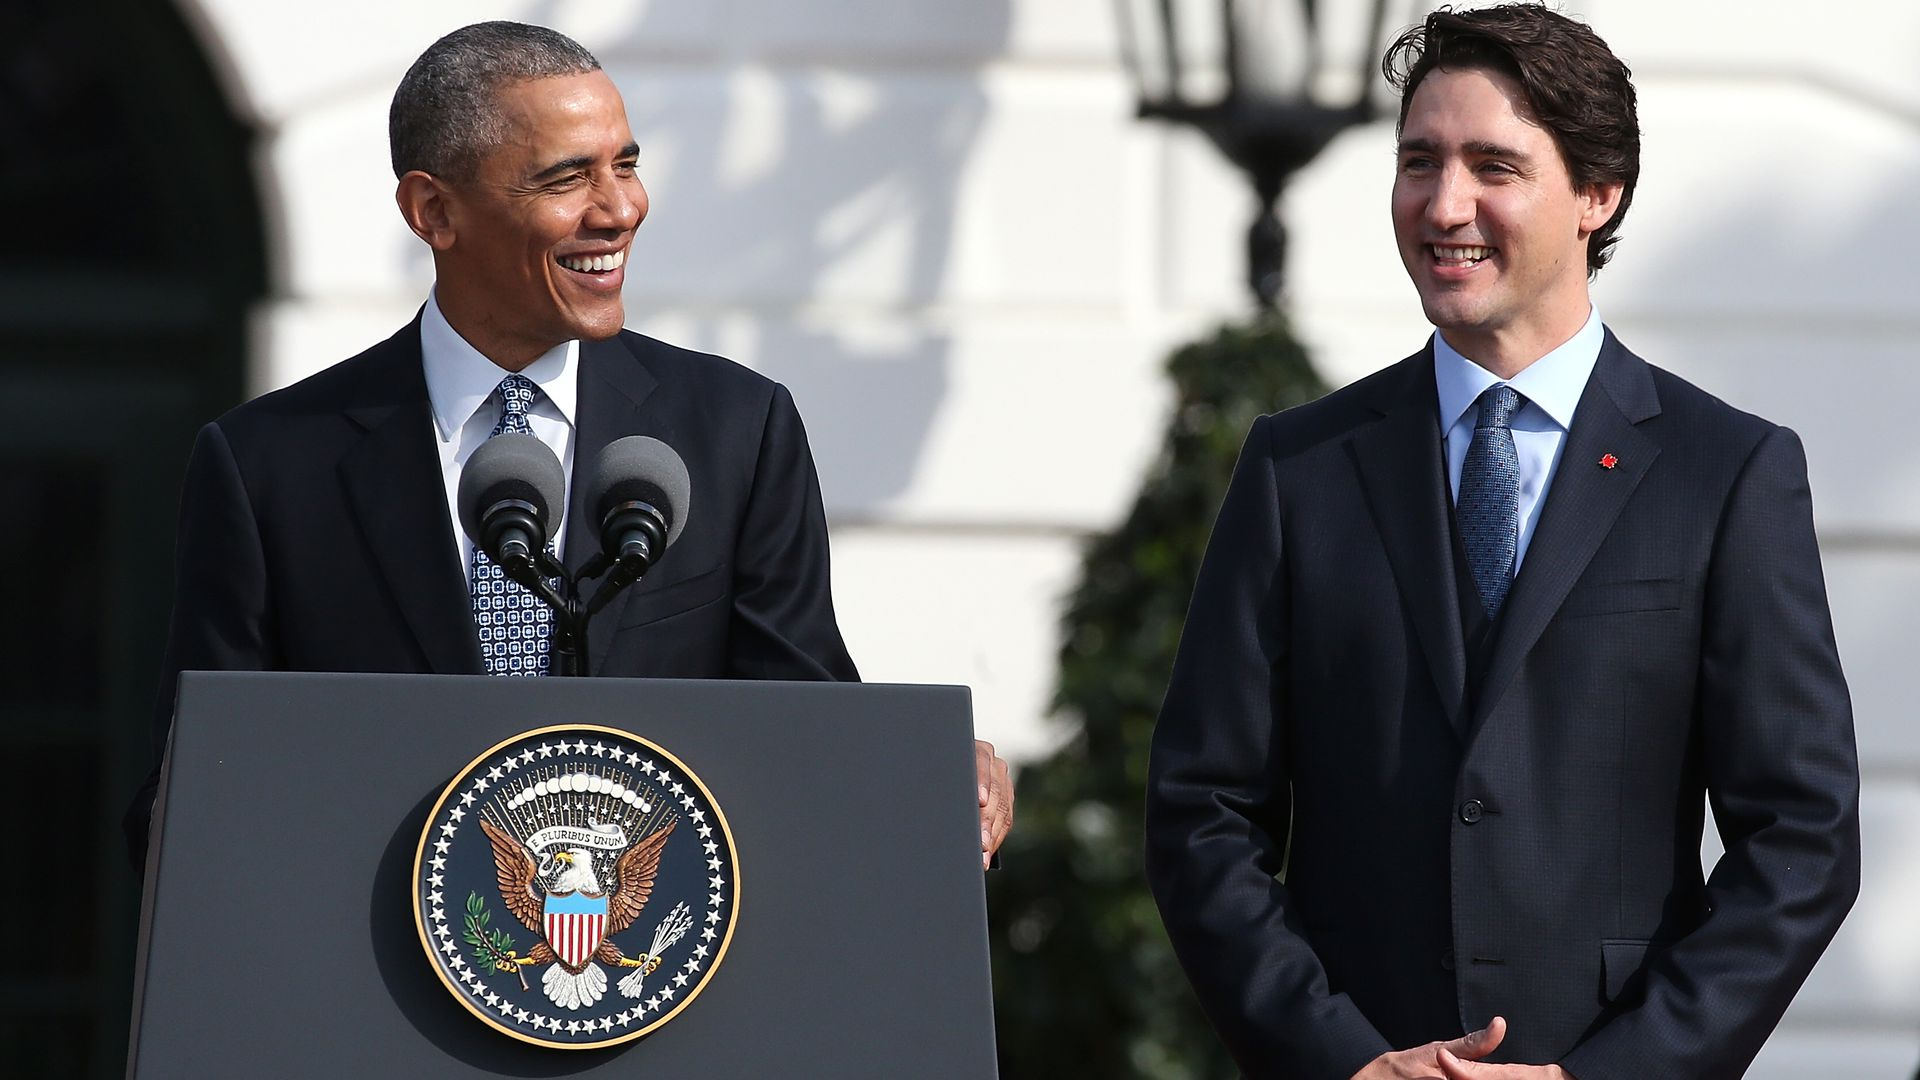 Obama offers rare endorsement for Canada's Justin Trudeau ahead of election